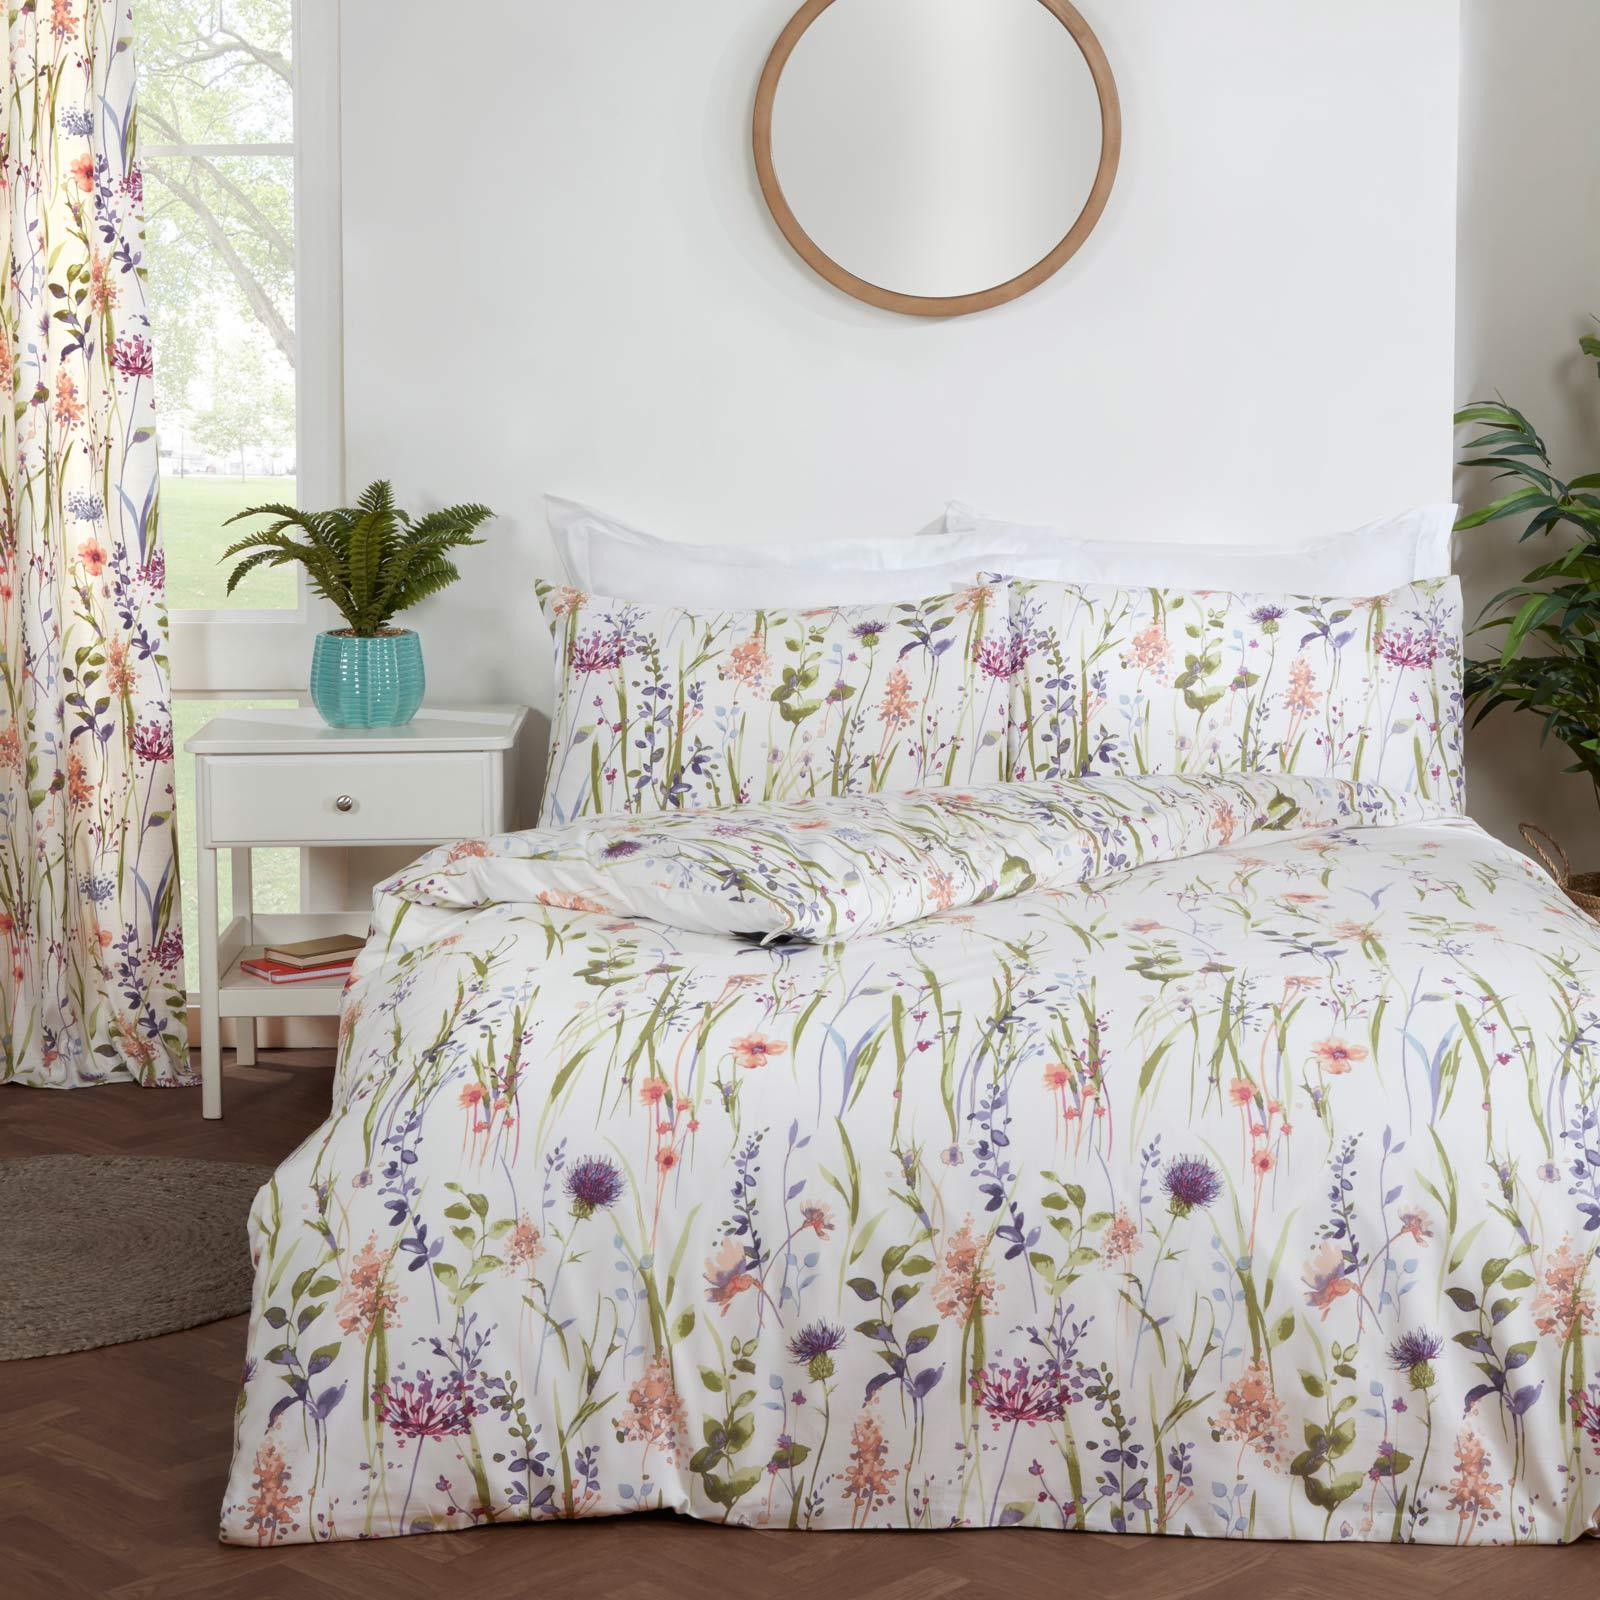 Hampshire Country Floral Multi Duvet Cover Set - Single - Ideal Textiles